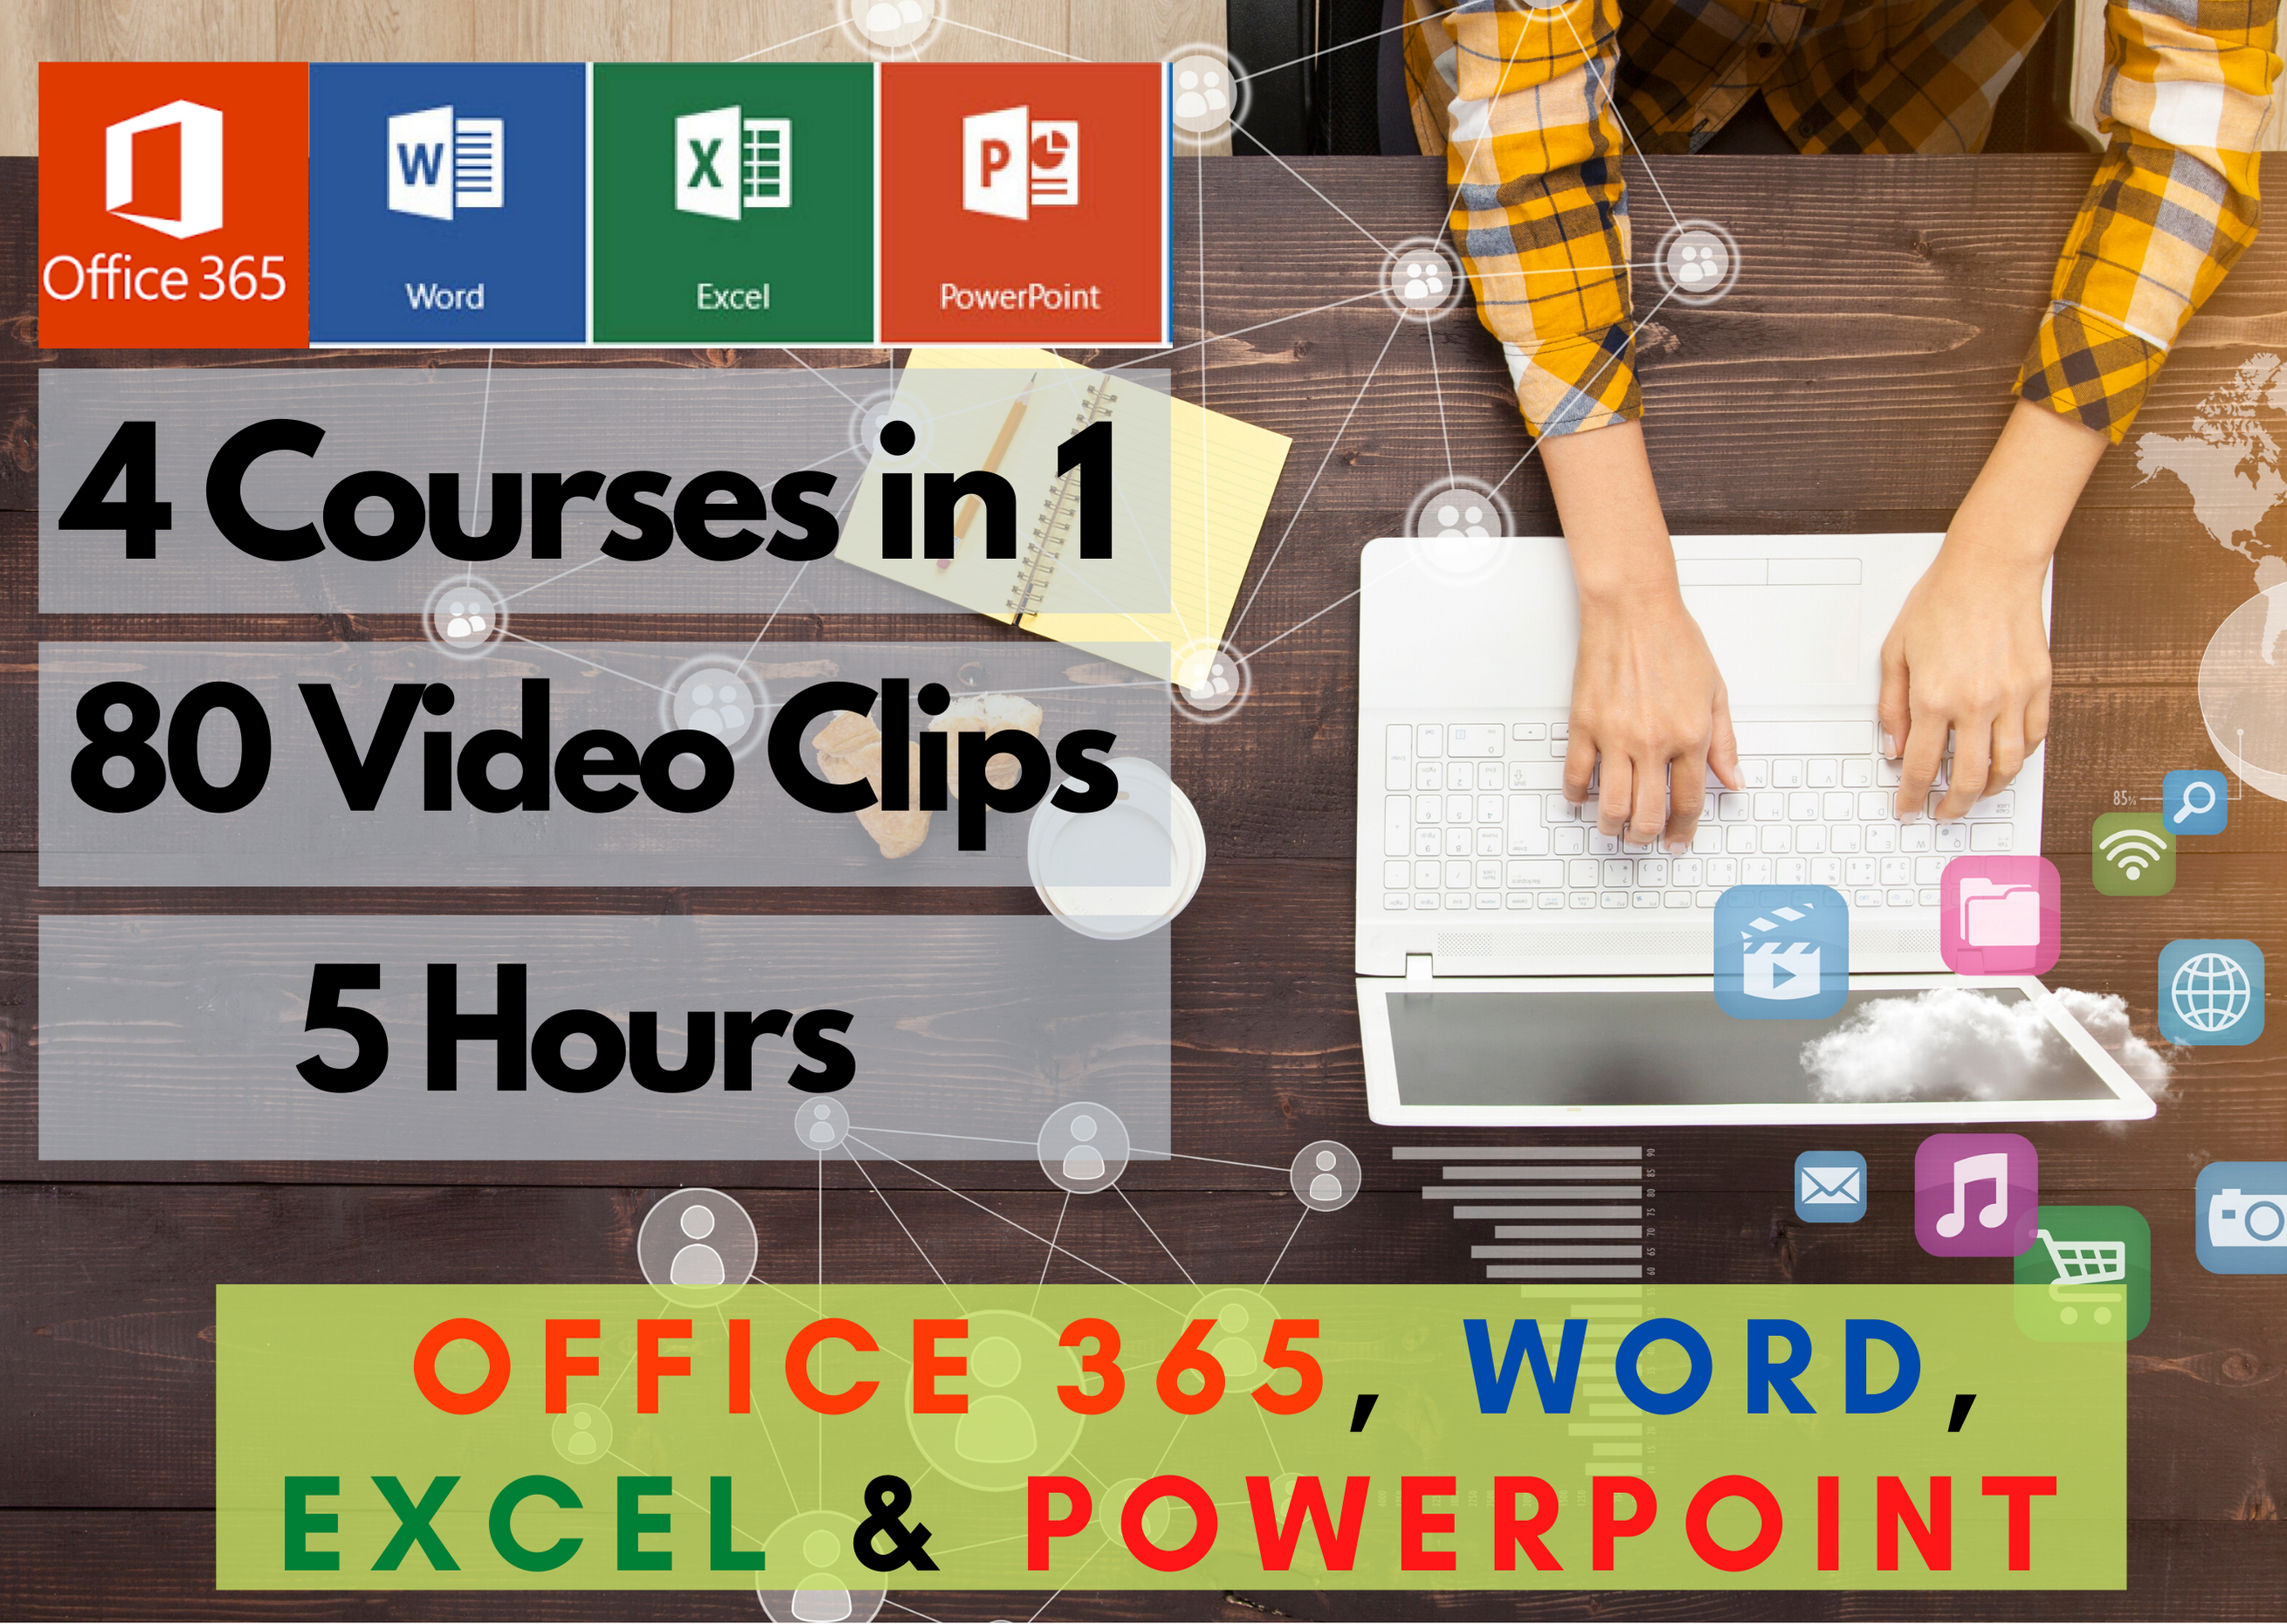 Office 365,  Word,  Excel & PowerPoint,  4 Courses in 1